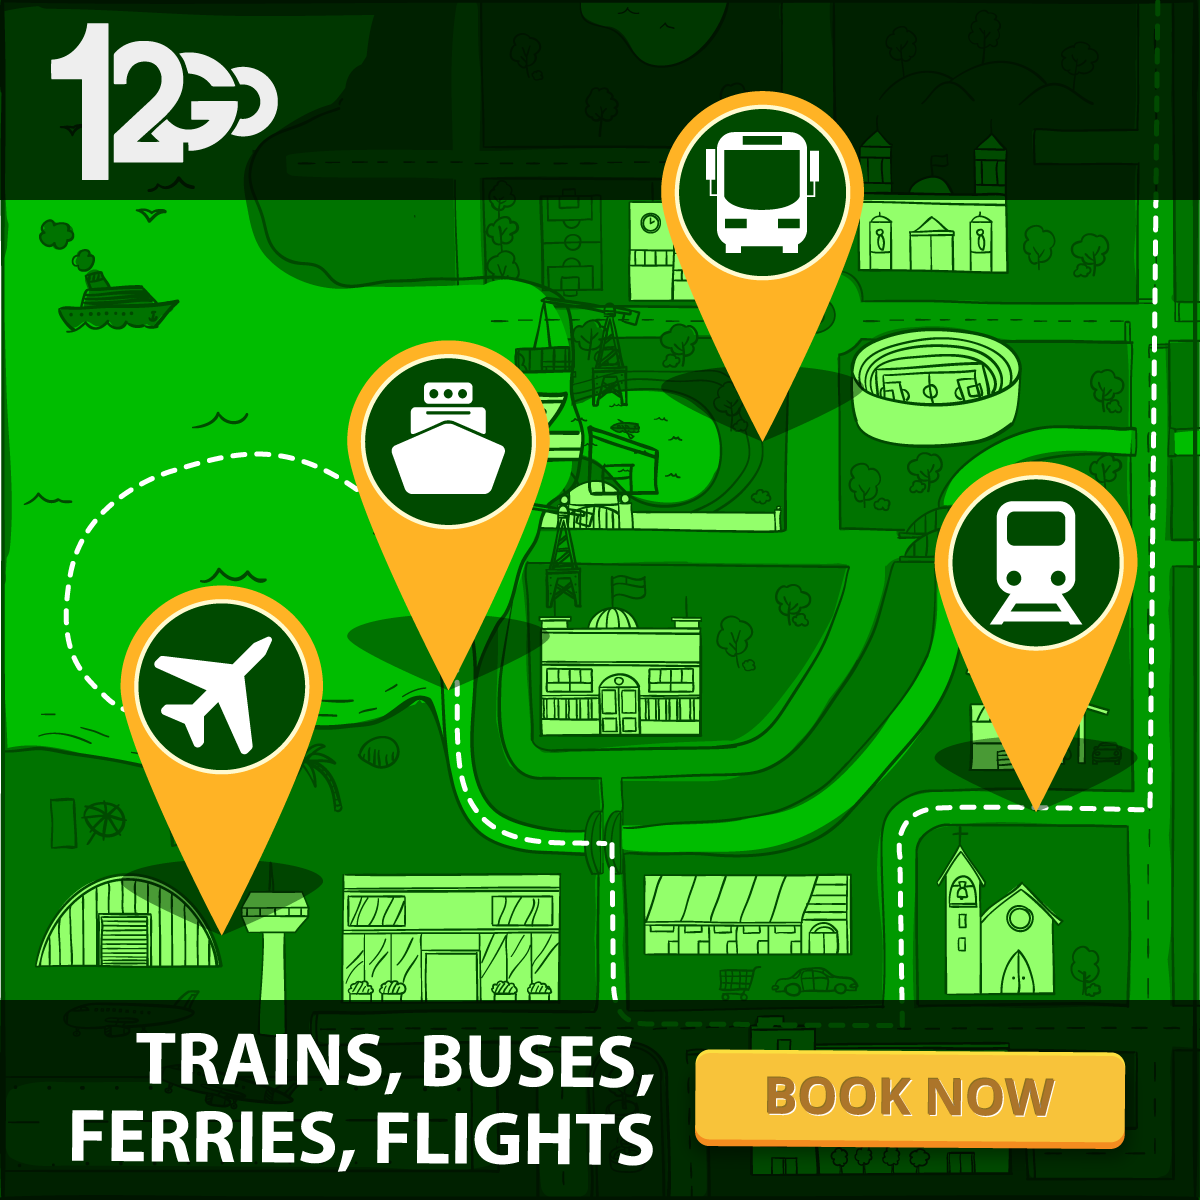 Book Tickets for trains, buses, ferries, charters in Southeast Asia with 12GO 1